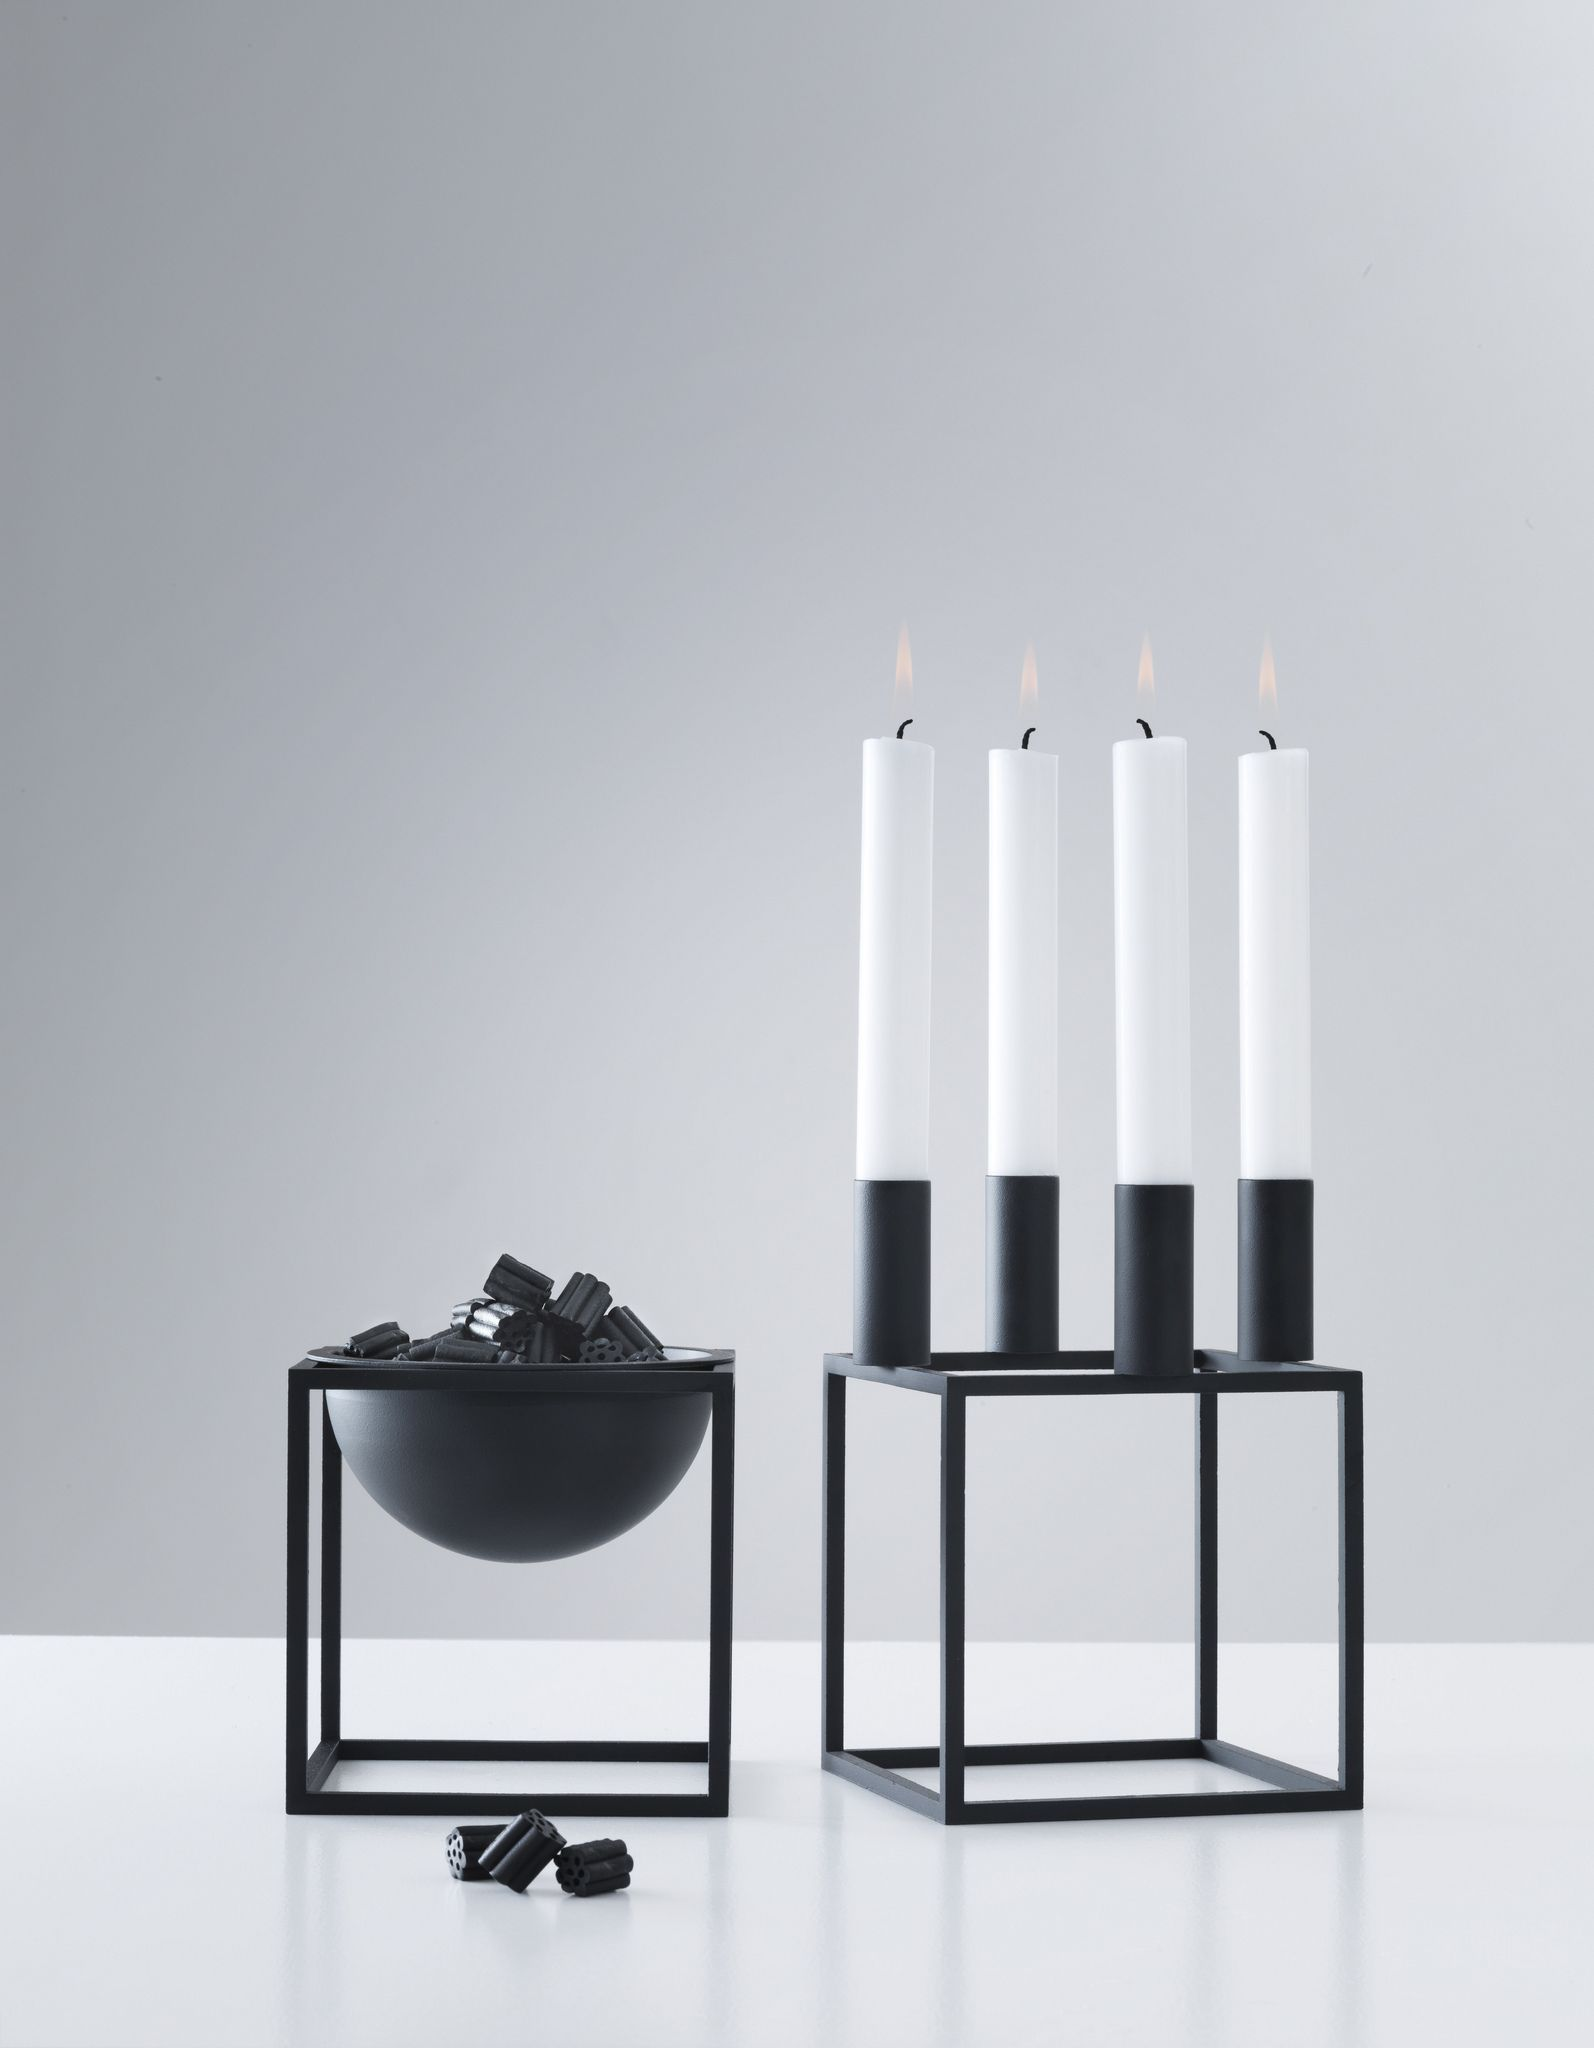 Black Kubus 4 Candle Holder And Kubus Bowl By Lassen Lysestage Designer Stearinlys